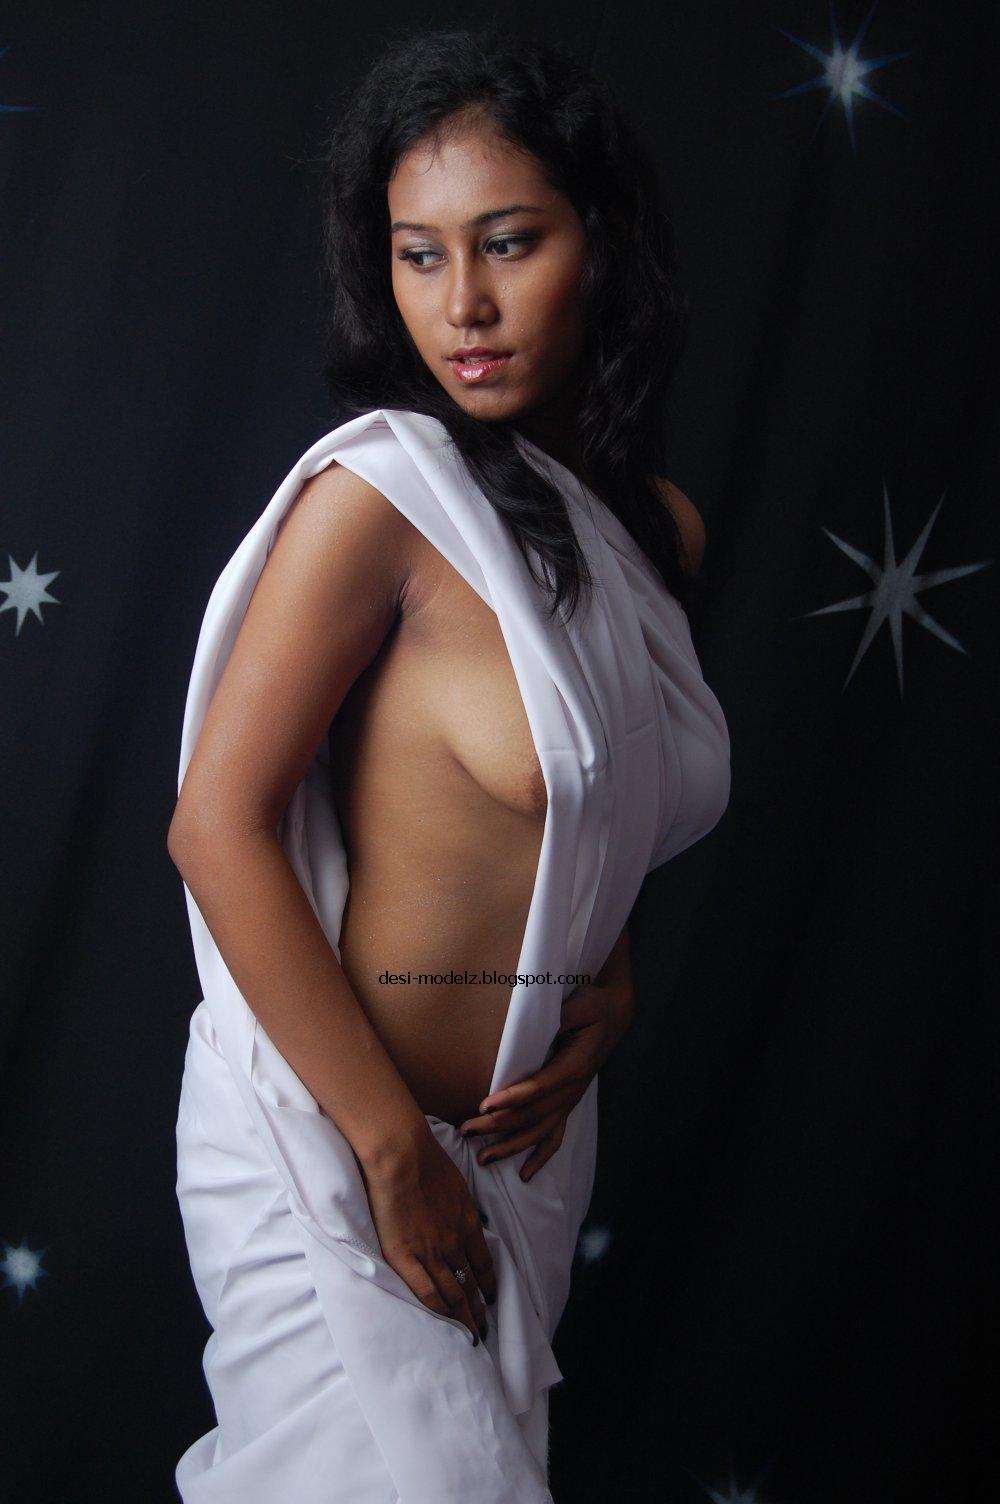 photo Model desi nud